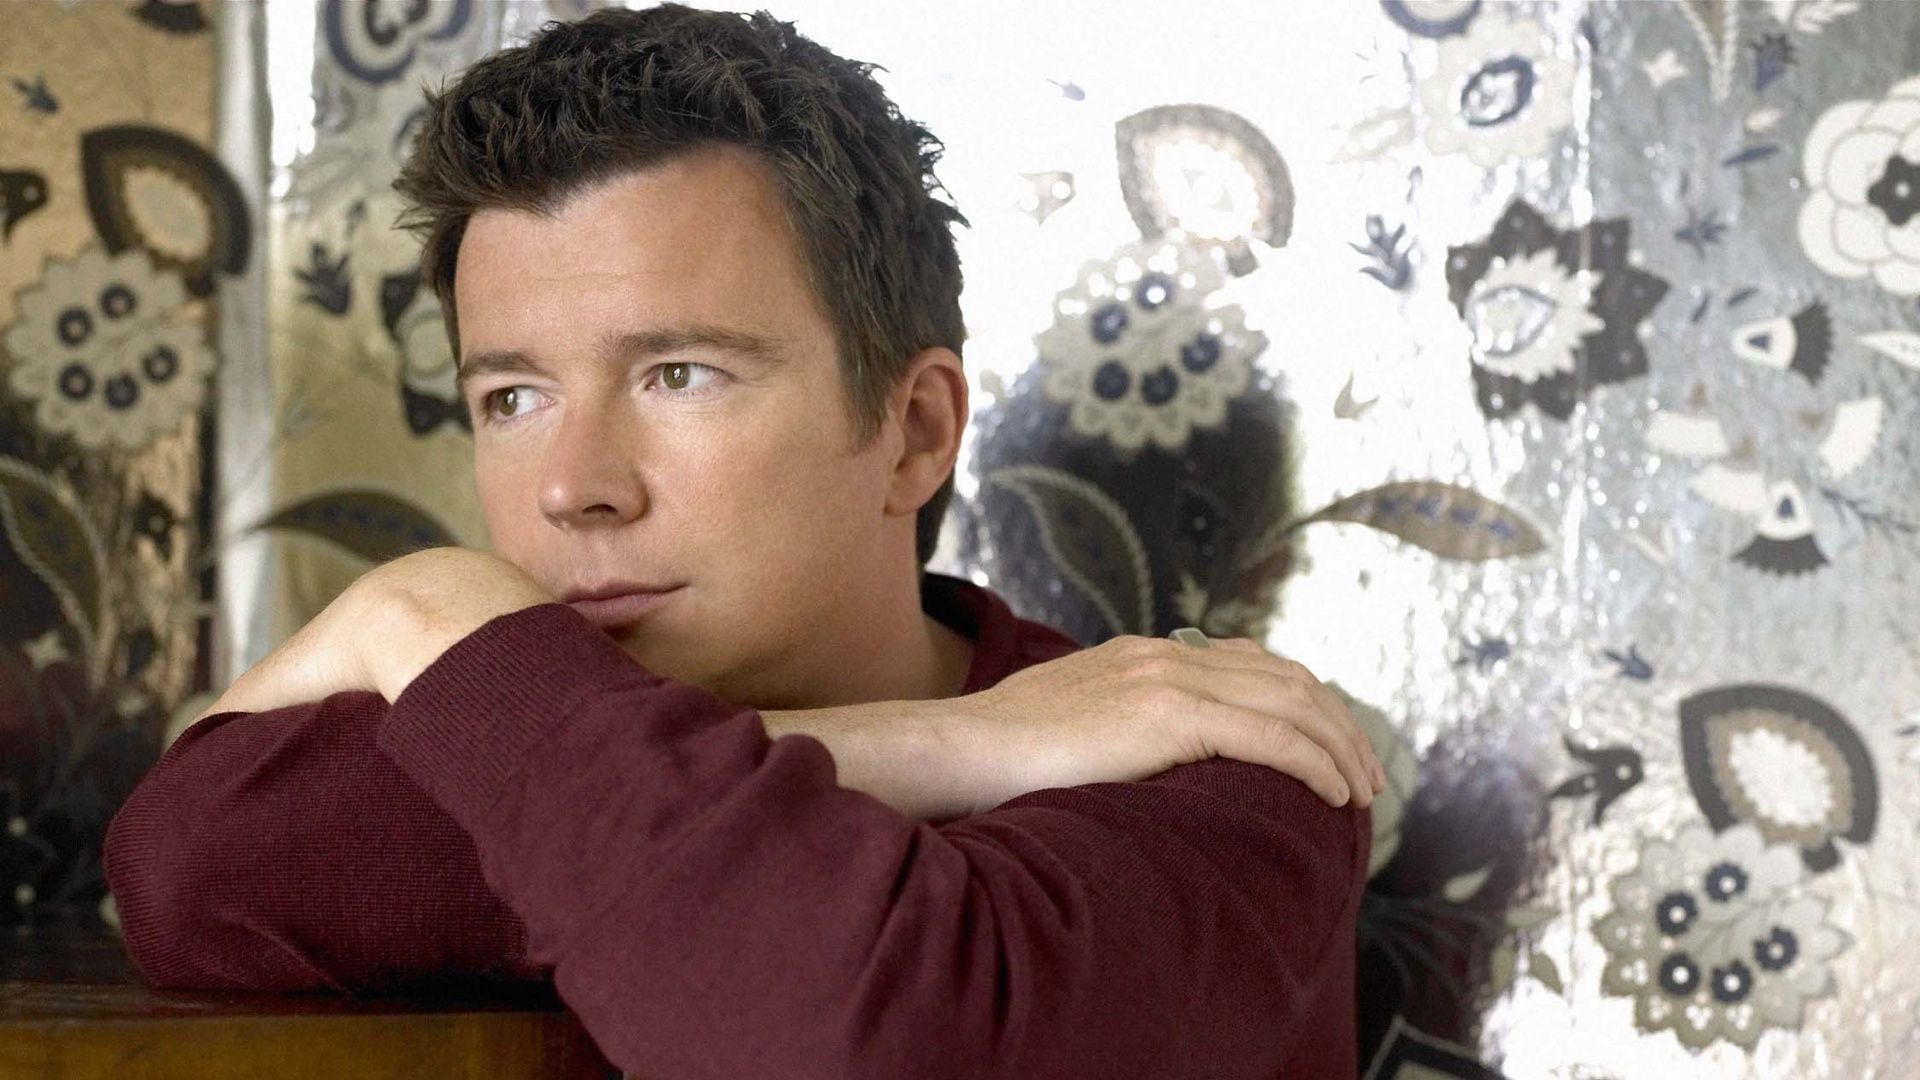 Best 52+ Rick Astley Wallpapers on HipWallpapers